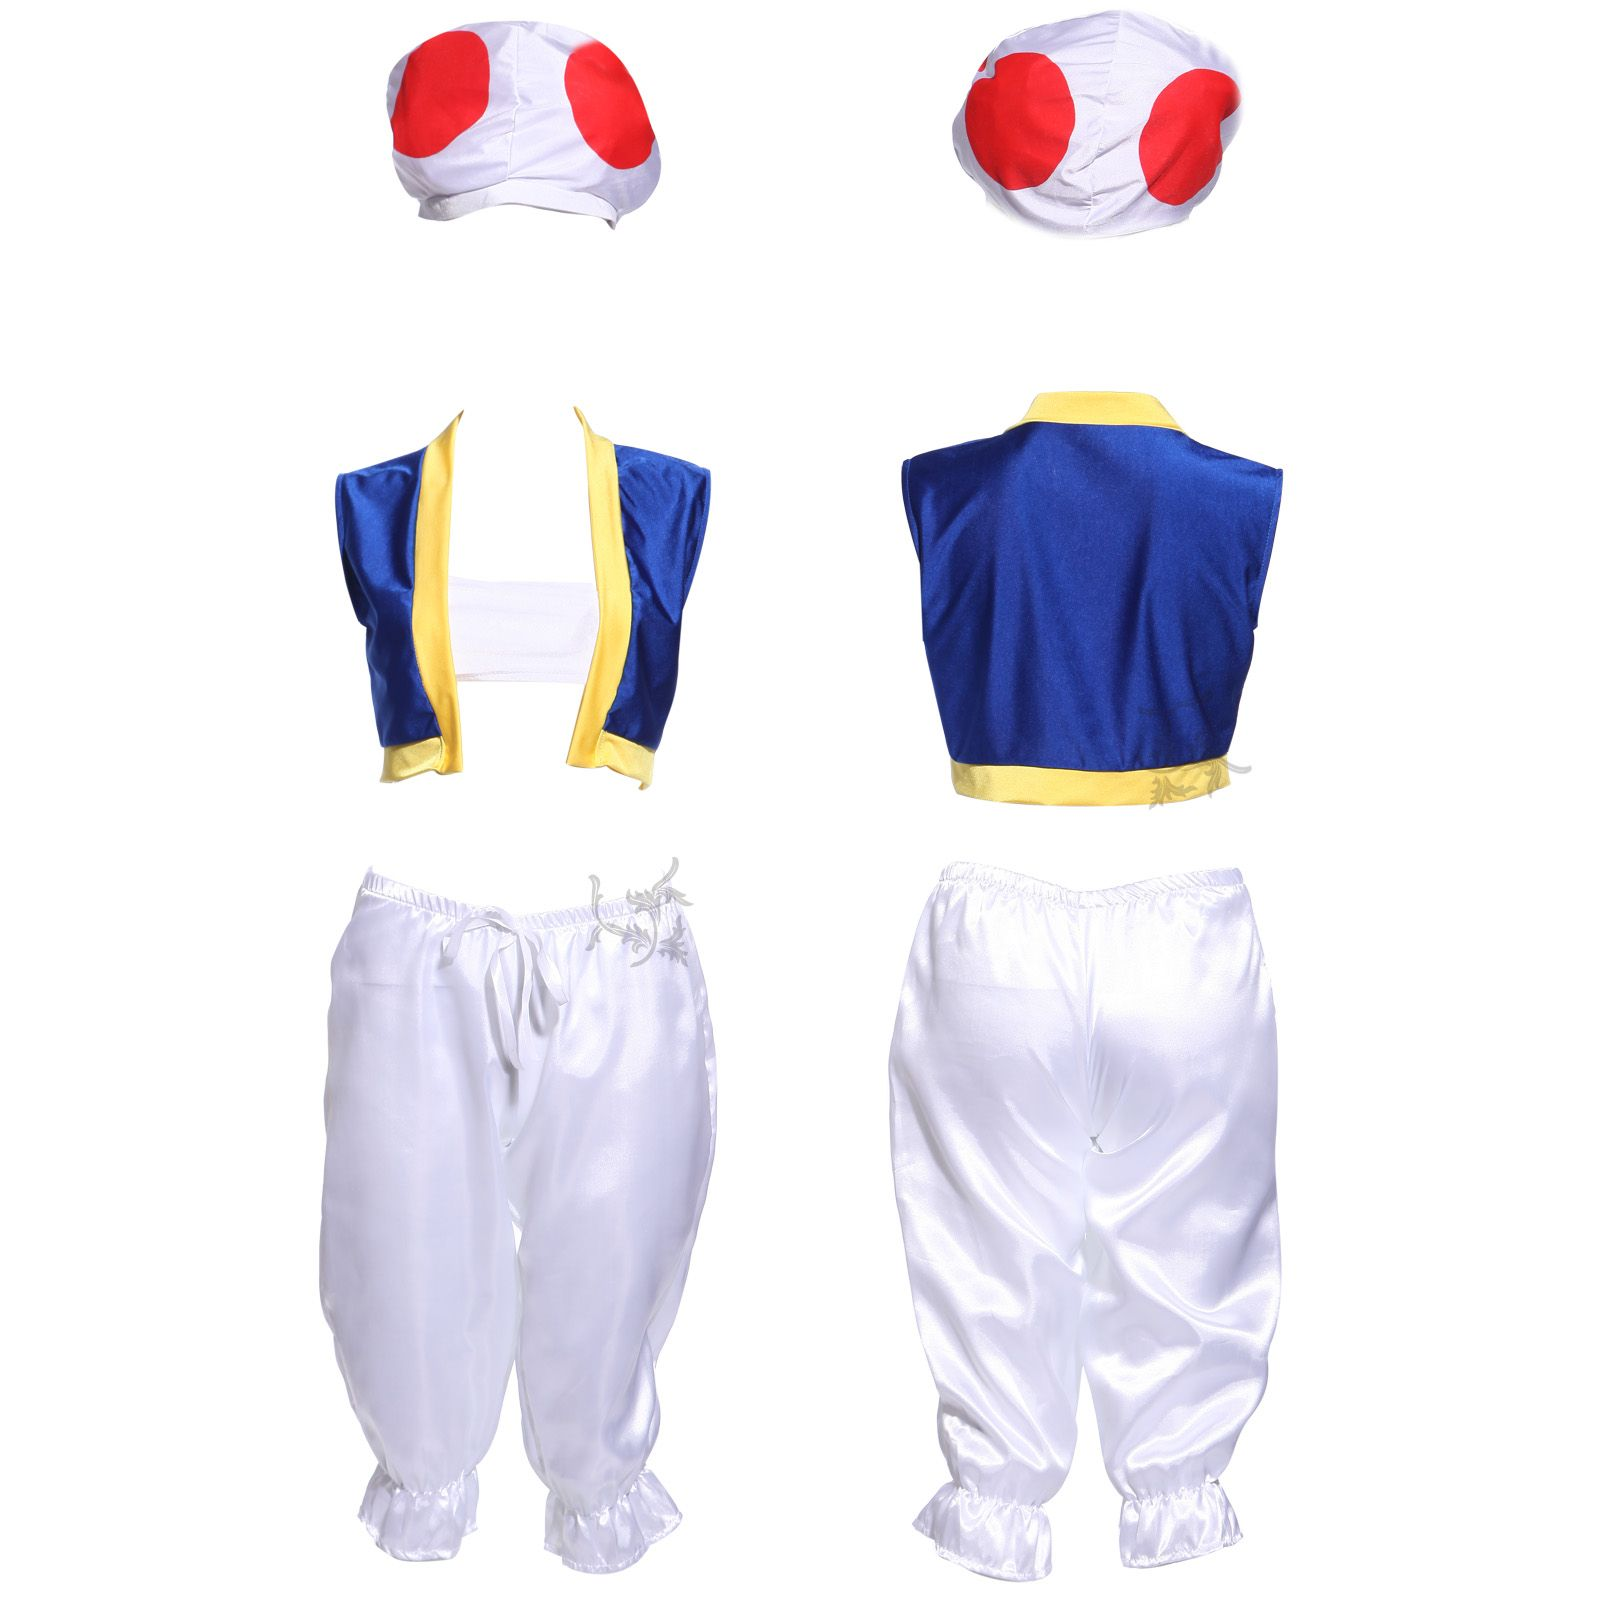 diy womens toad costume - Google Search  sc 1 st  Pinterest & Toad from Super Mario Bros. Super Easy No Sew Homemade Halloween ...